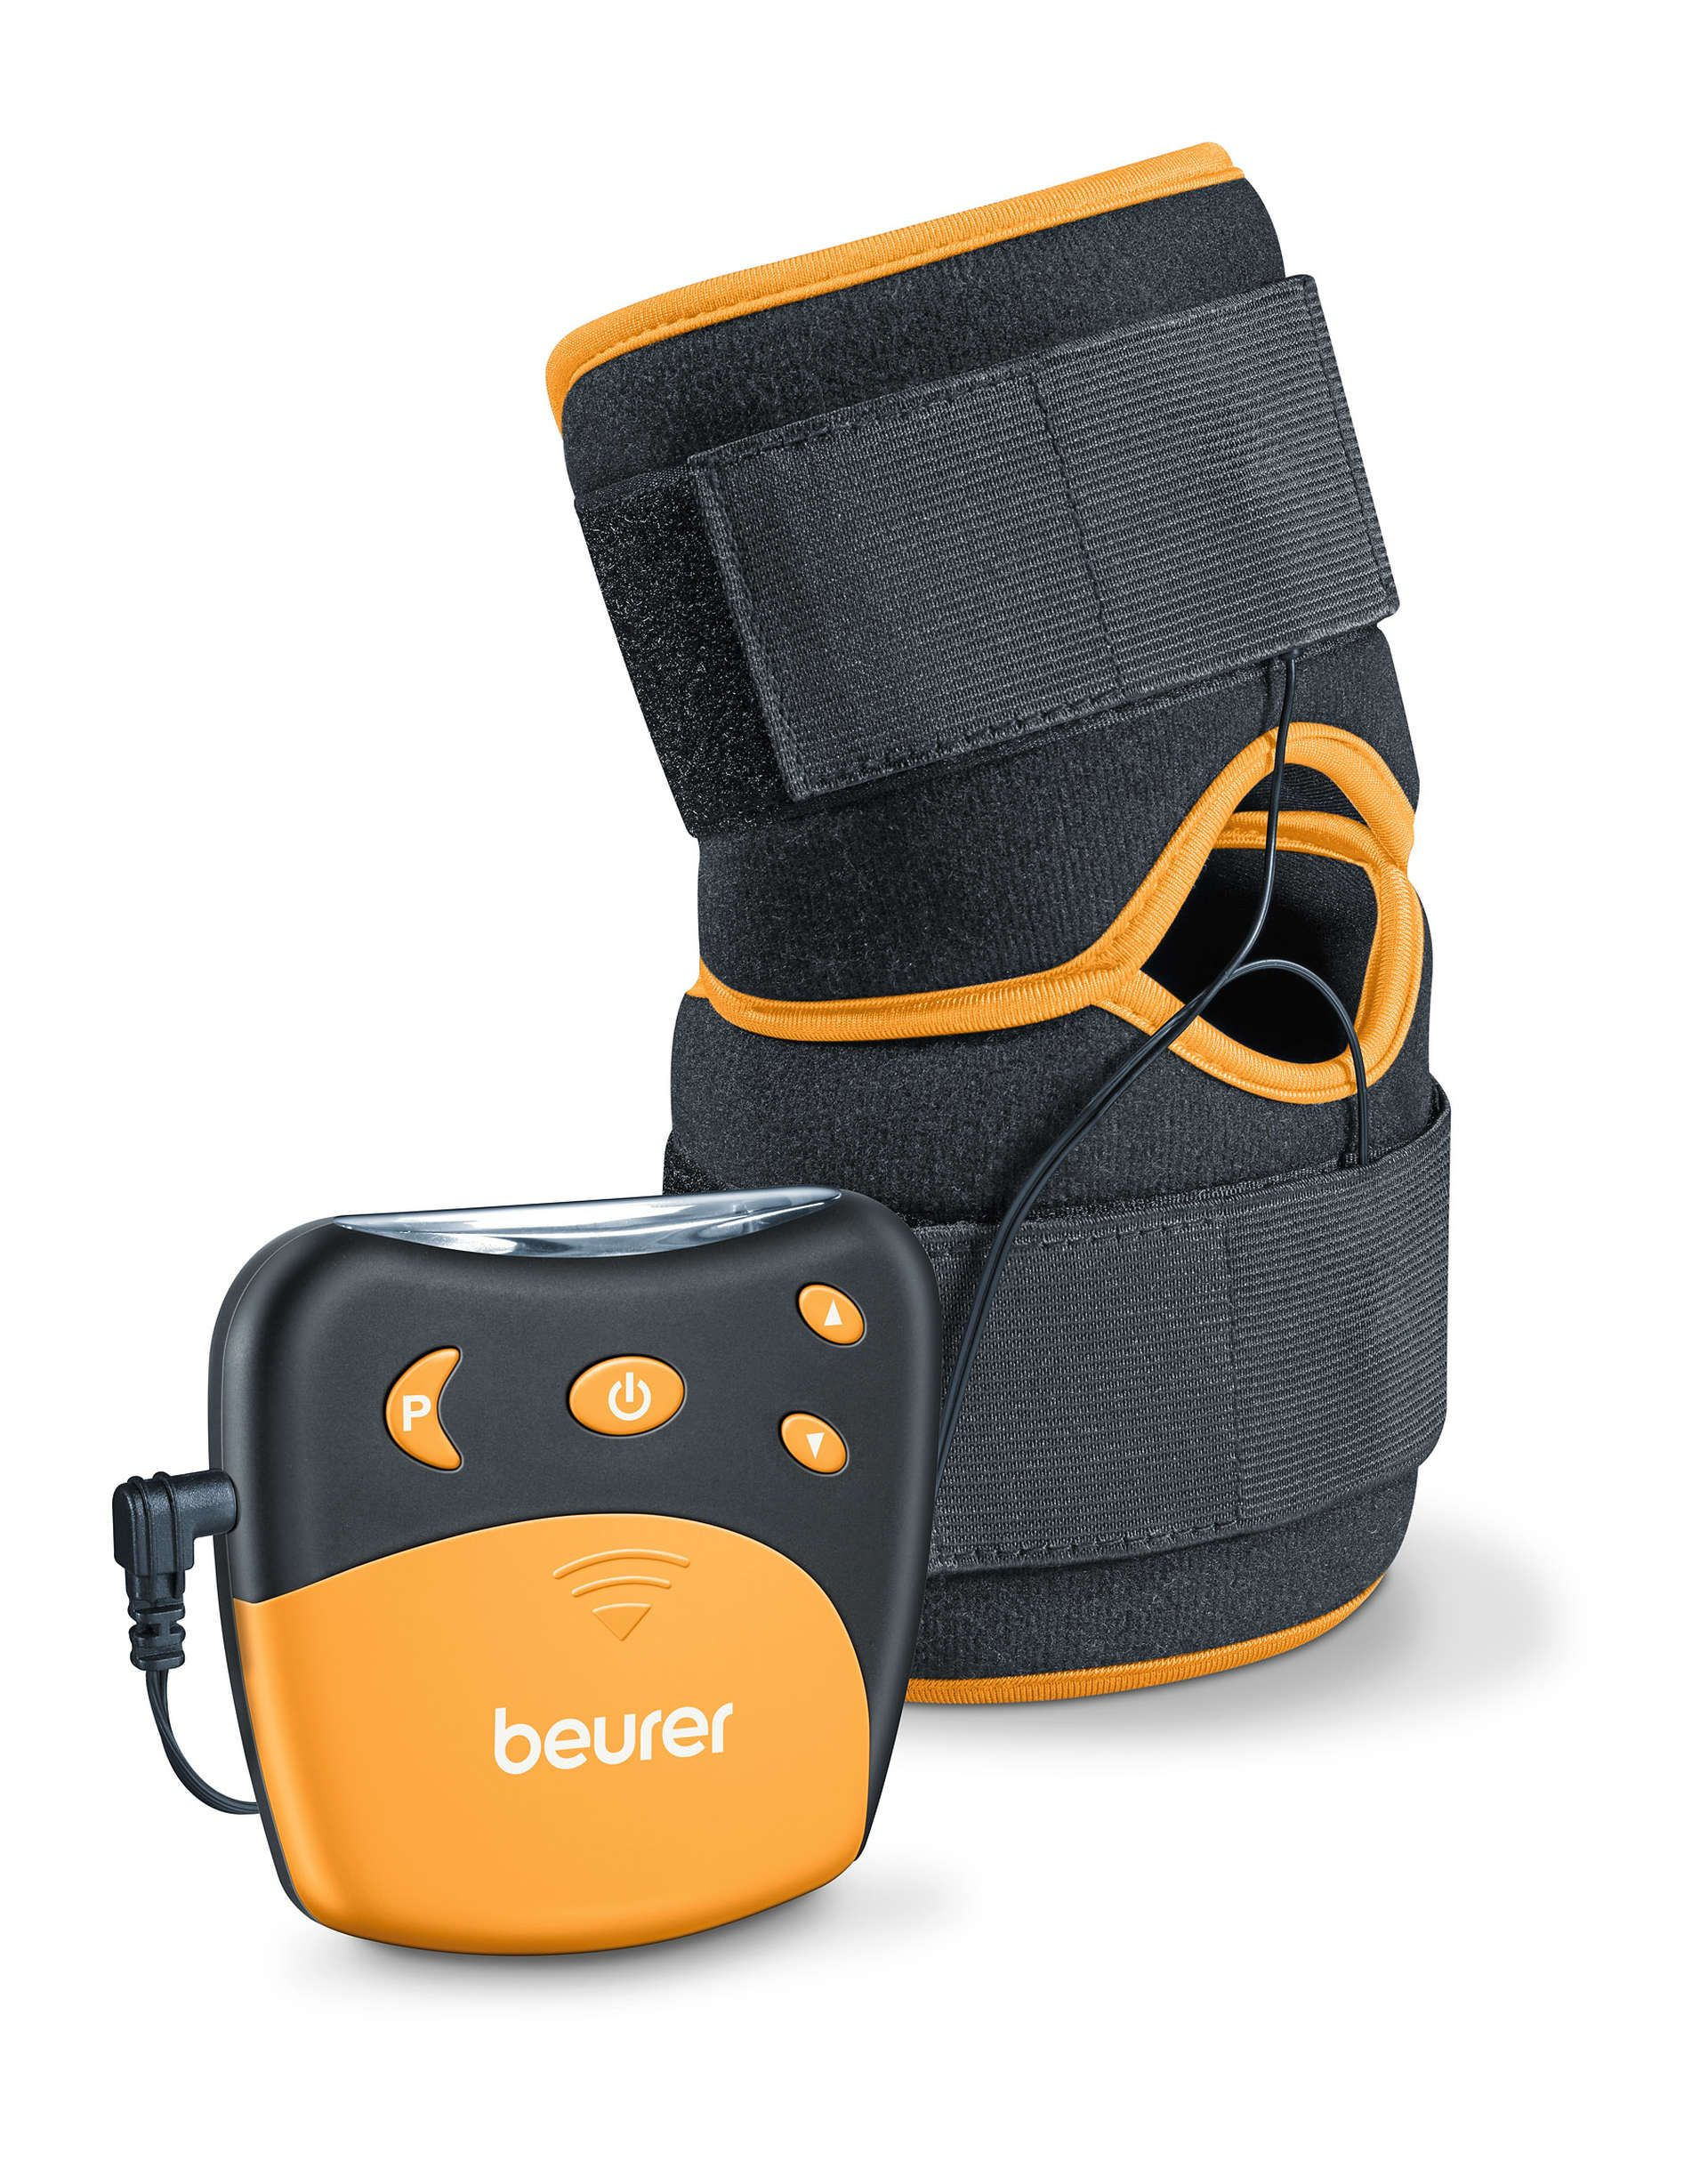 beurer-knee-and-elbow-tens-em-29-kuwait-online